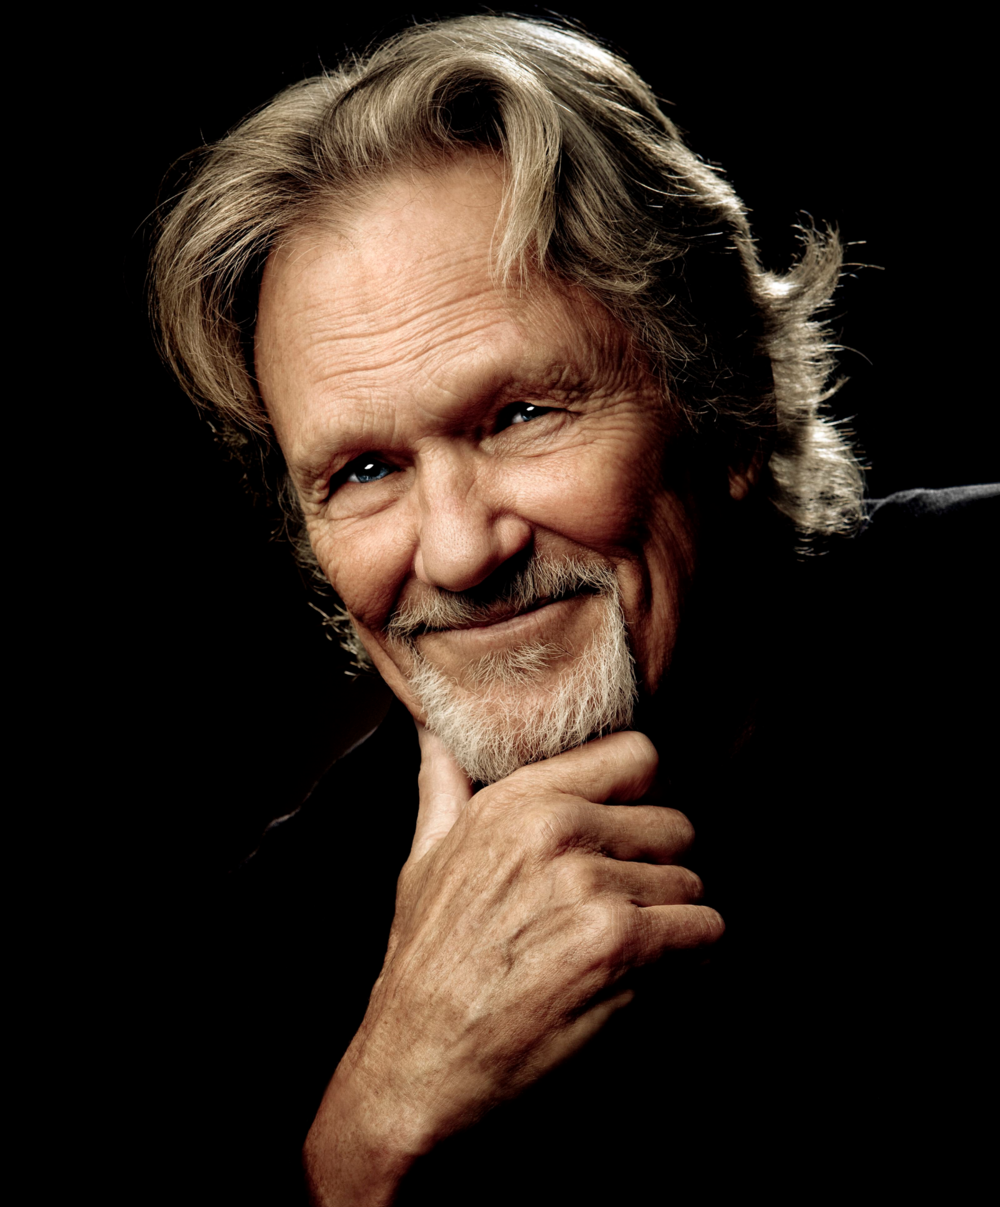 Kris Kristofferson Live at Tarrytown Music Hall - 1/26/17 @ 8PM